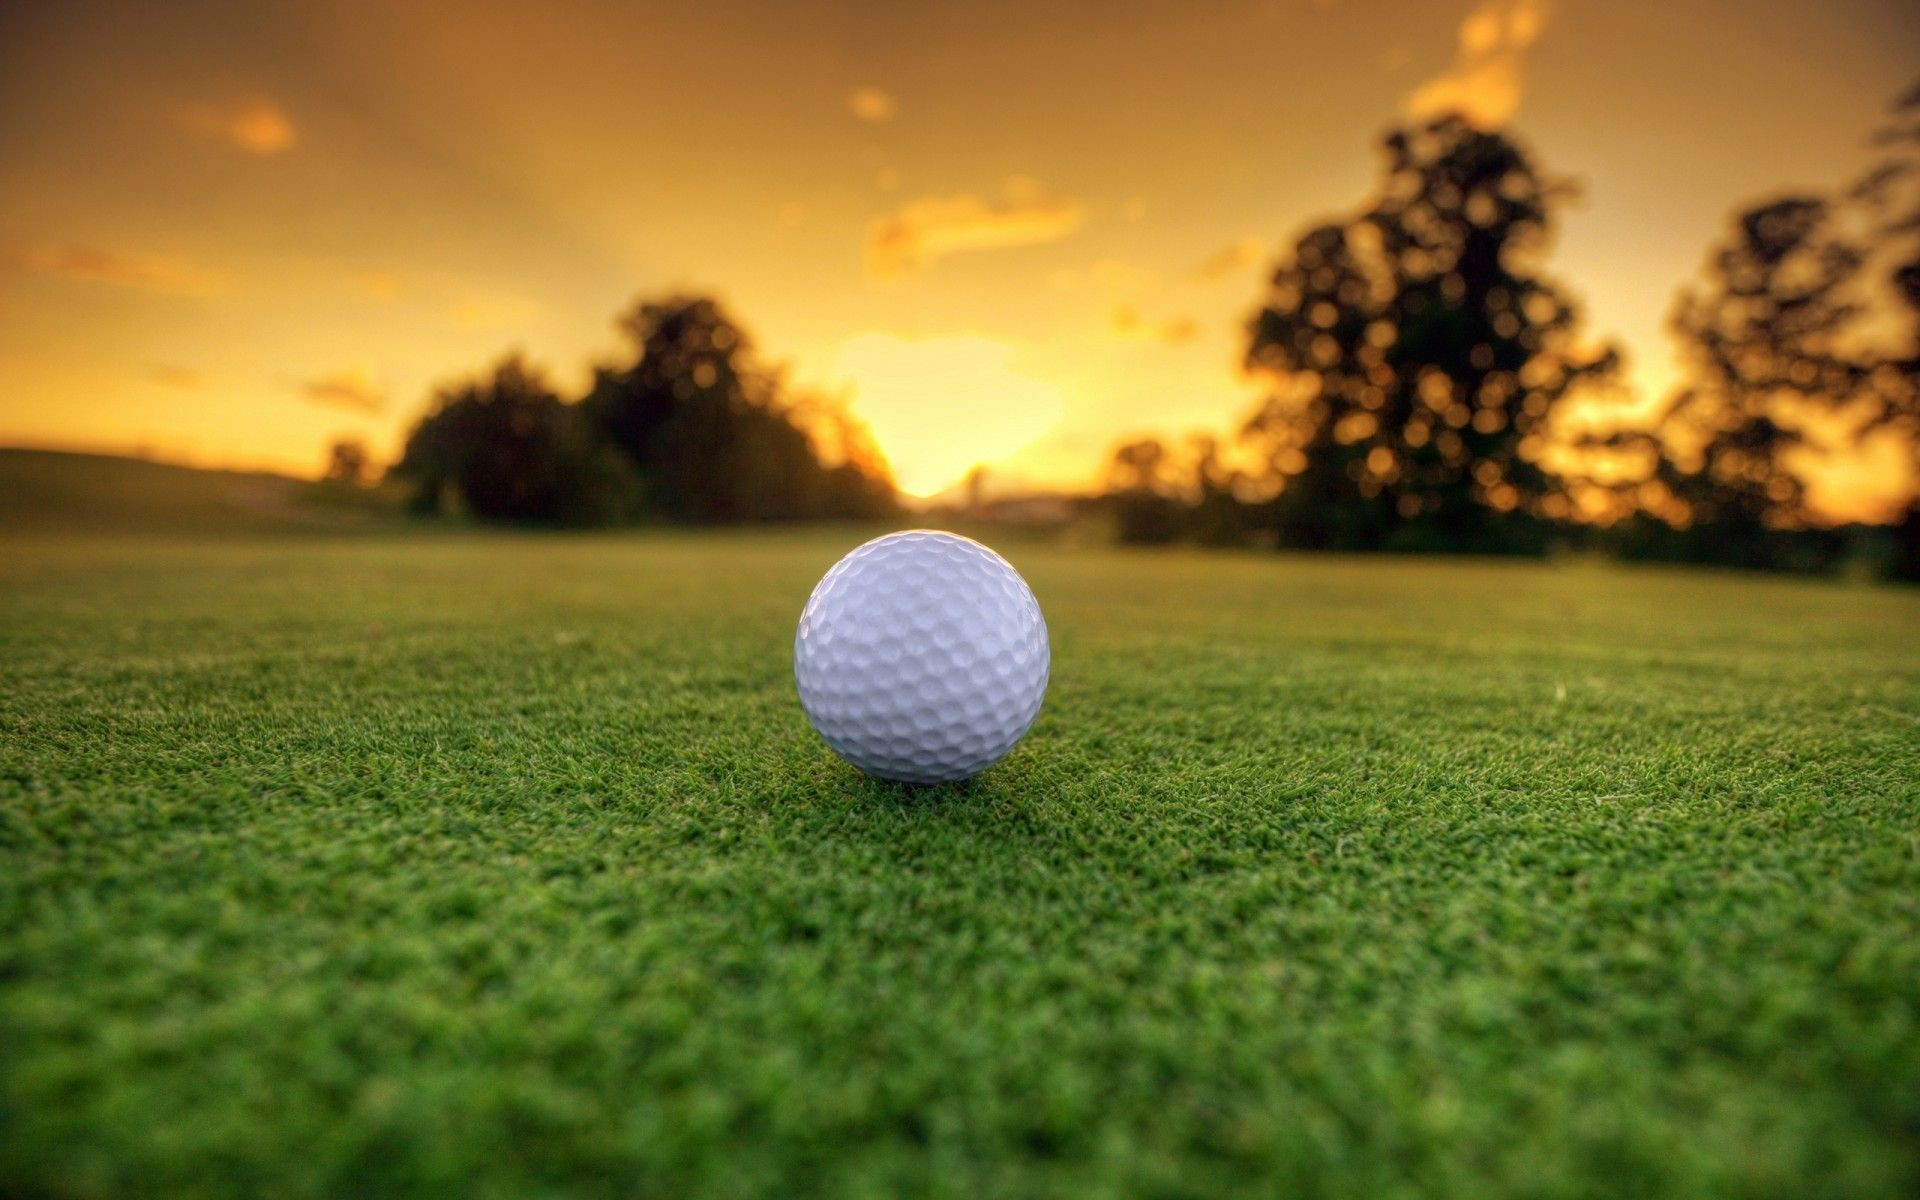 best images about golf on Pinterest Play golf Golf art and   Wallpapers 4k    Pinterest   Golf, Golf art and Wallpaper